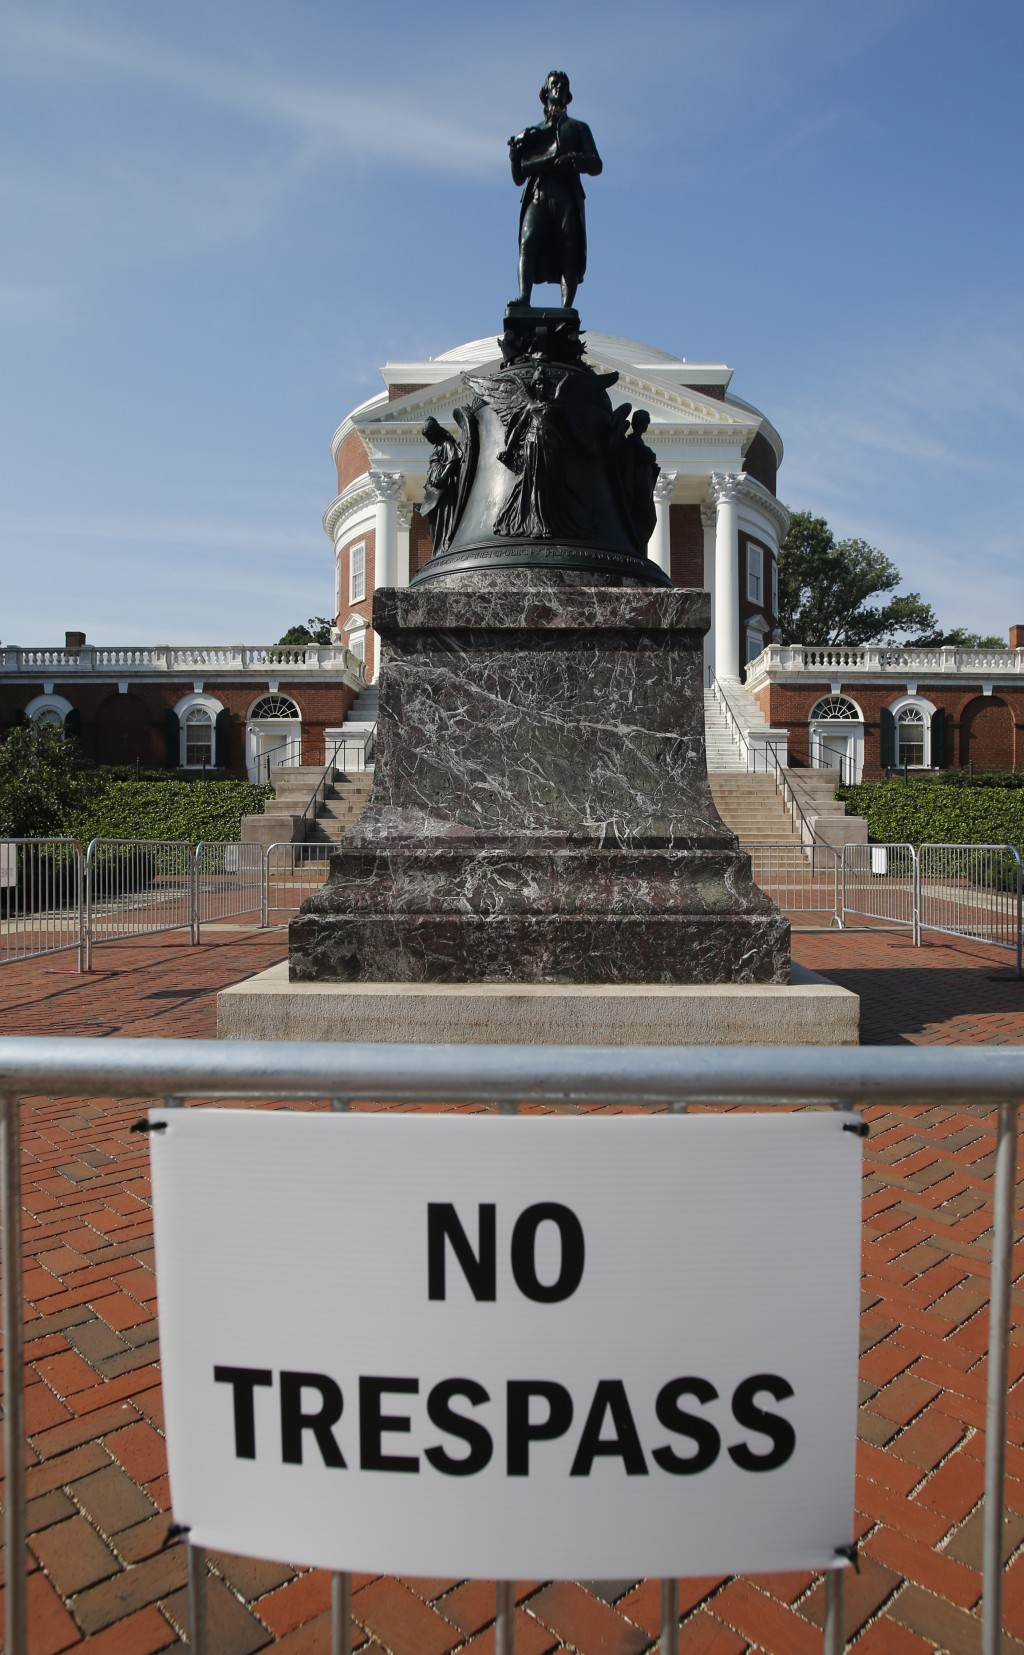 In this Monday, Aug. 6, 2018 photo, a statue of Thomas Jefferson is surrounded by fencing and a No Trespassing sign in front of the rotunda on the cam